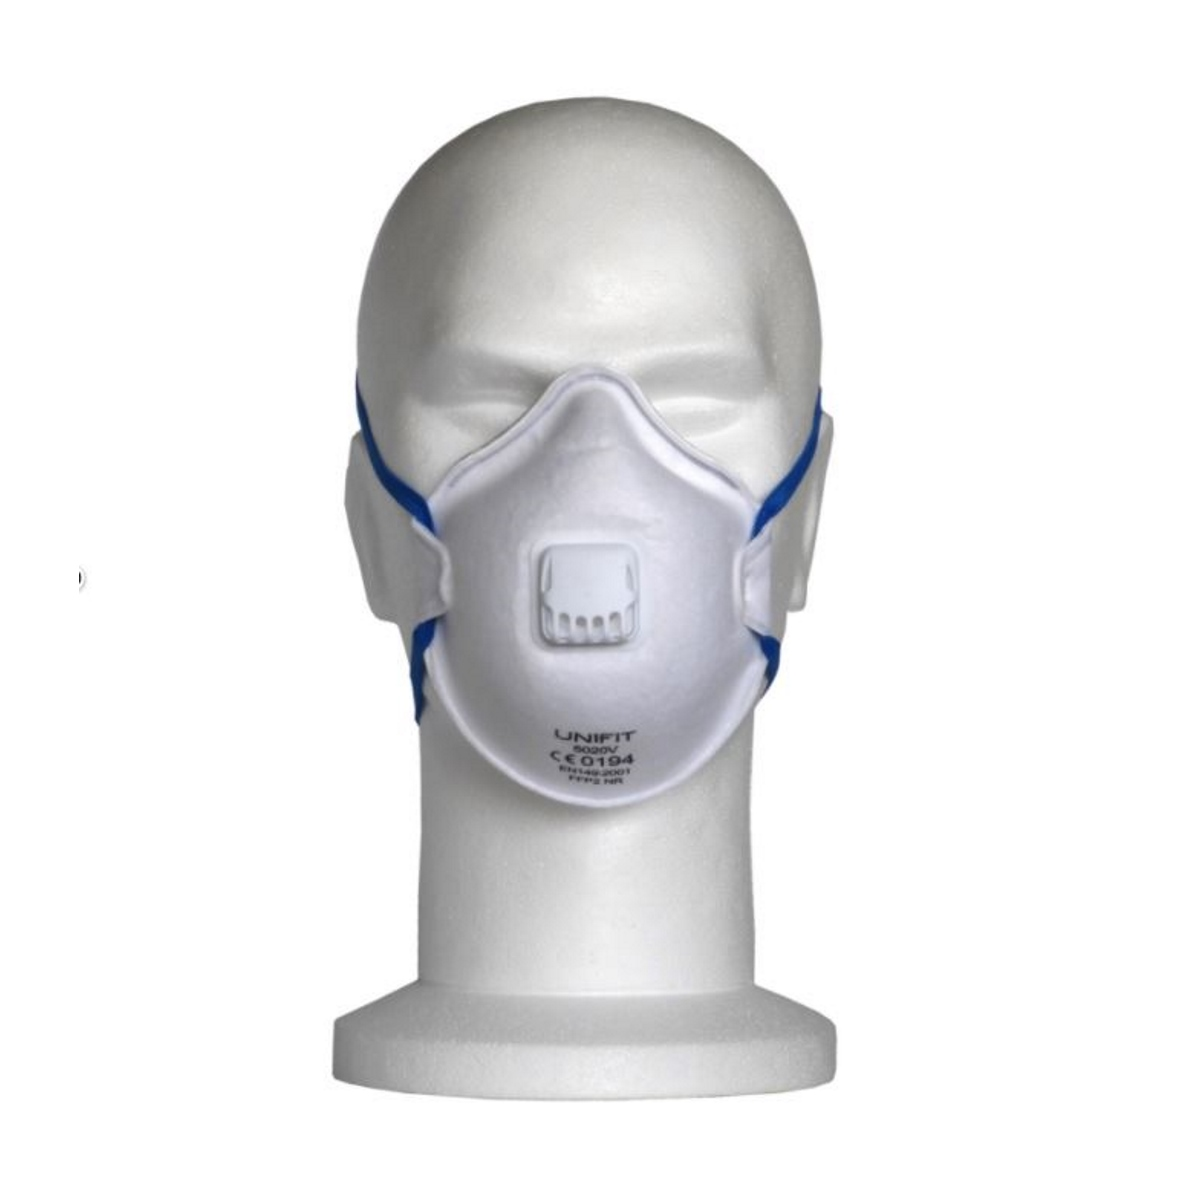 Unifit Cup Mask FFP2V Box of 10